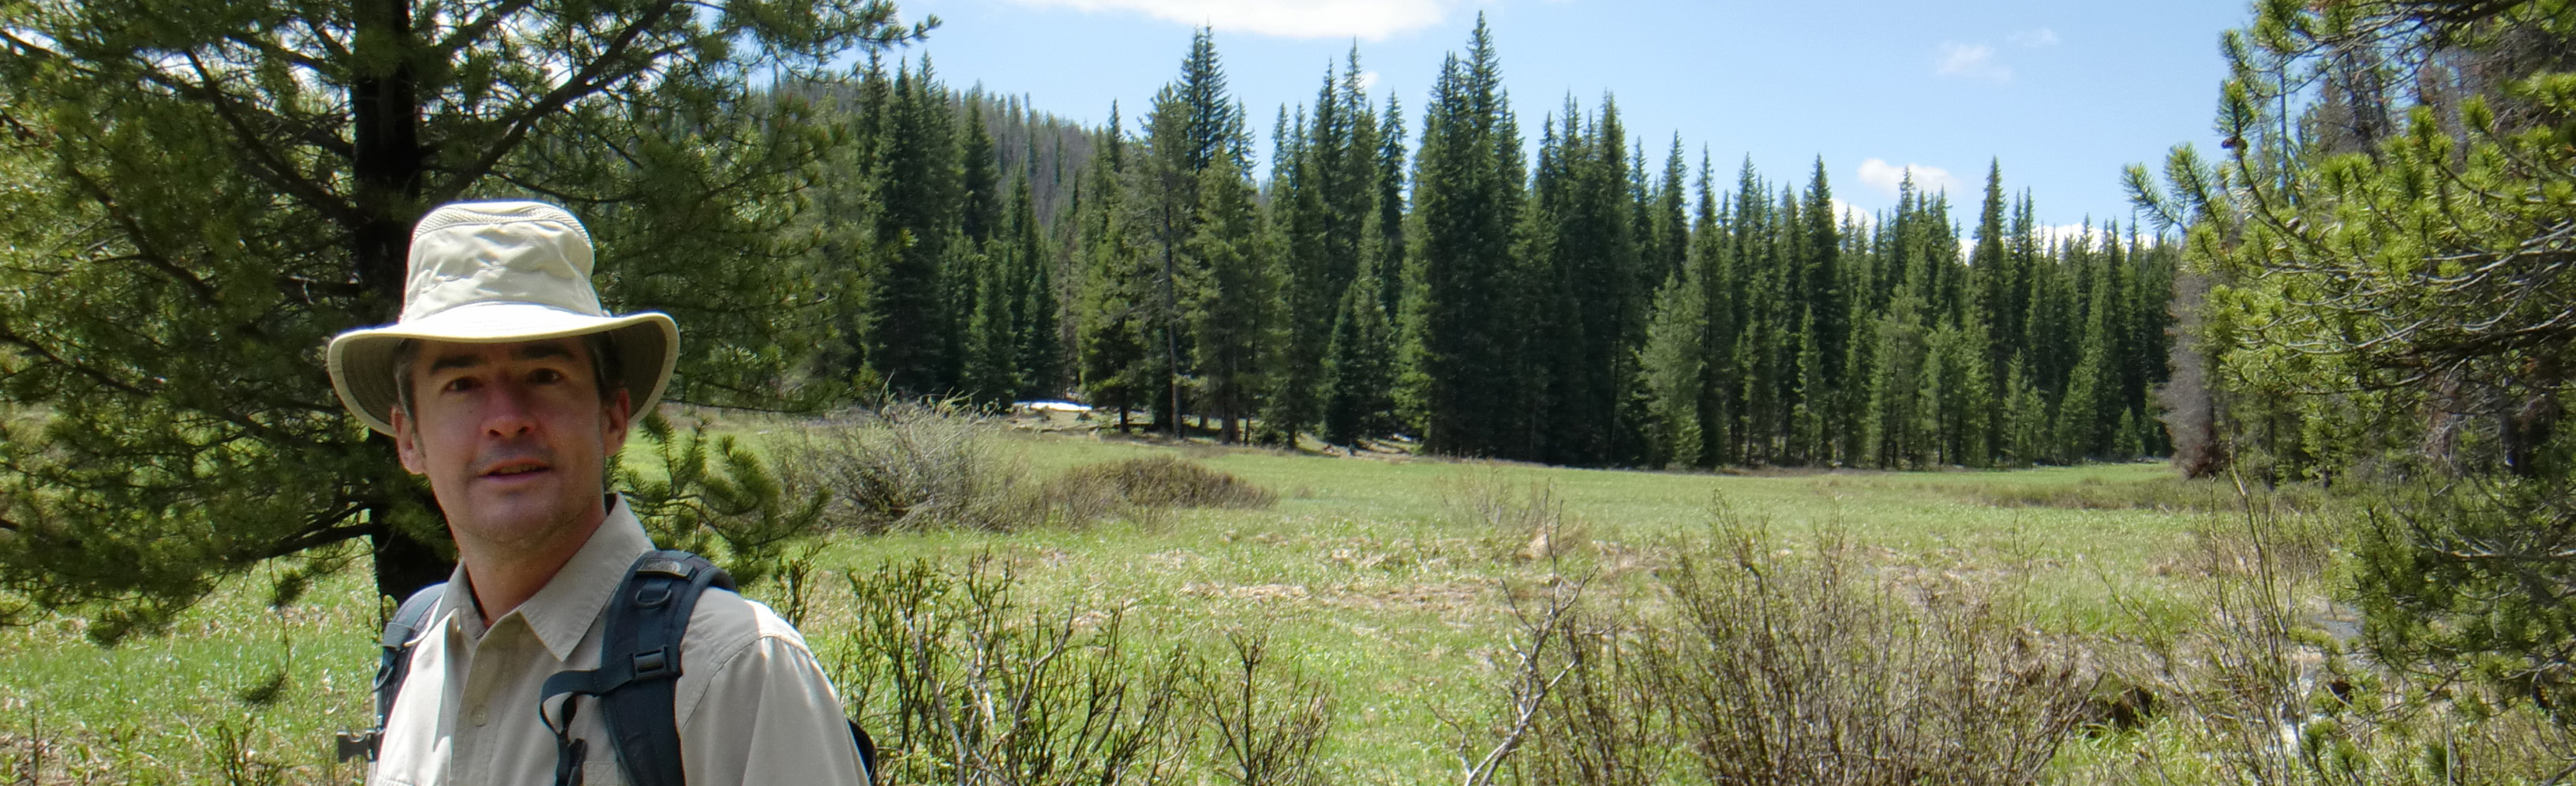 Another beautiful Colorado mountain meadow...and a gringo.